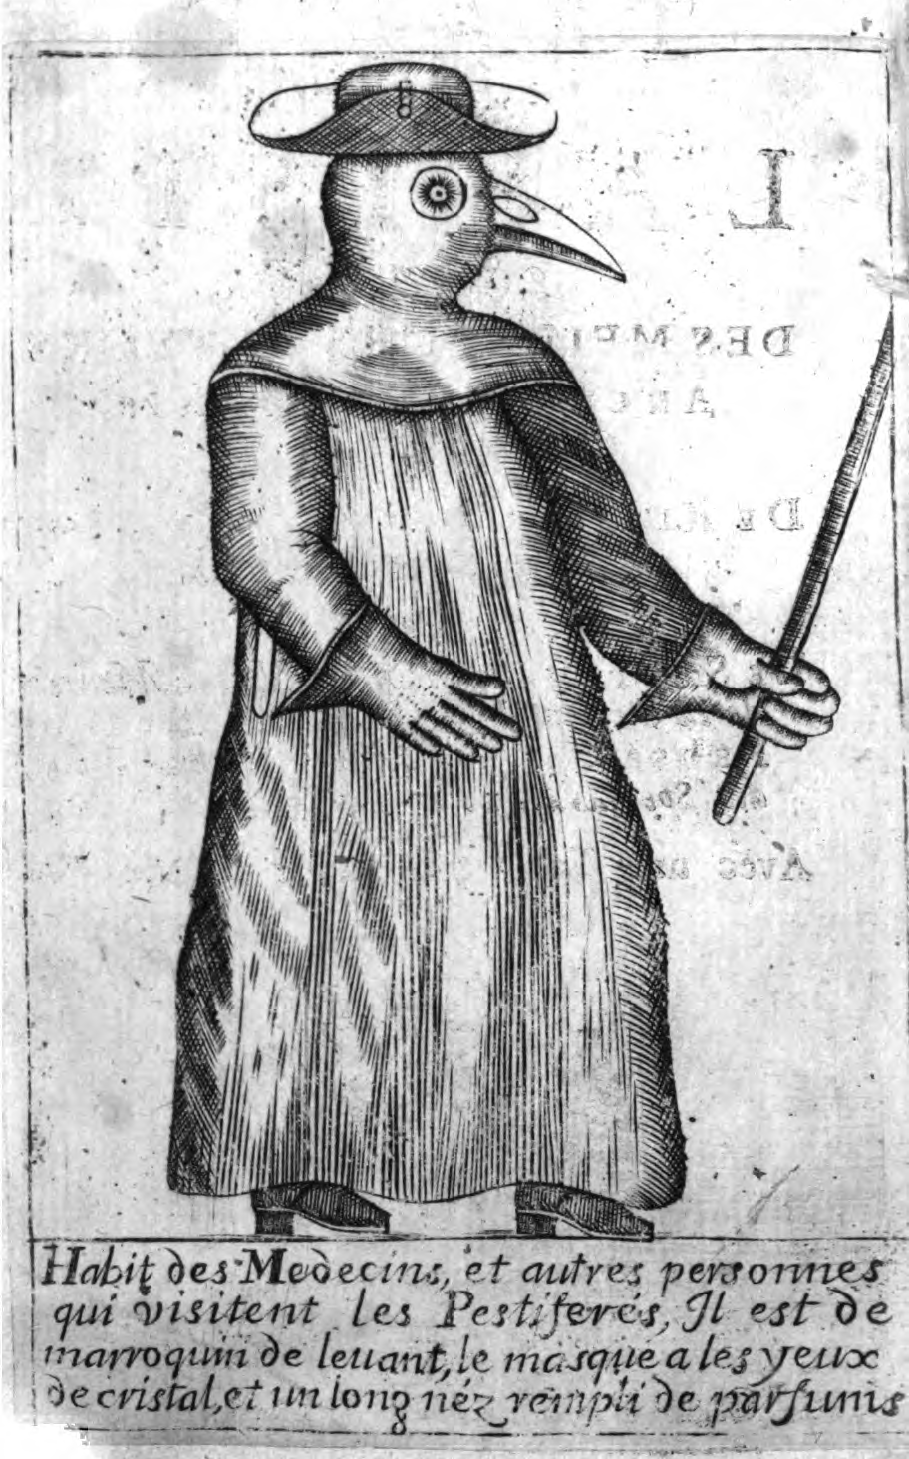 https://upload.wikimedia.org/wikipedia/commons/8/87/A_Plague_Doctor_%E2%80%93_from_Jean-Jacques_Manget,_Trait%C3%A9_de_la_peste_(1721)%3B_University_of_Lausanne_version.png